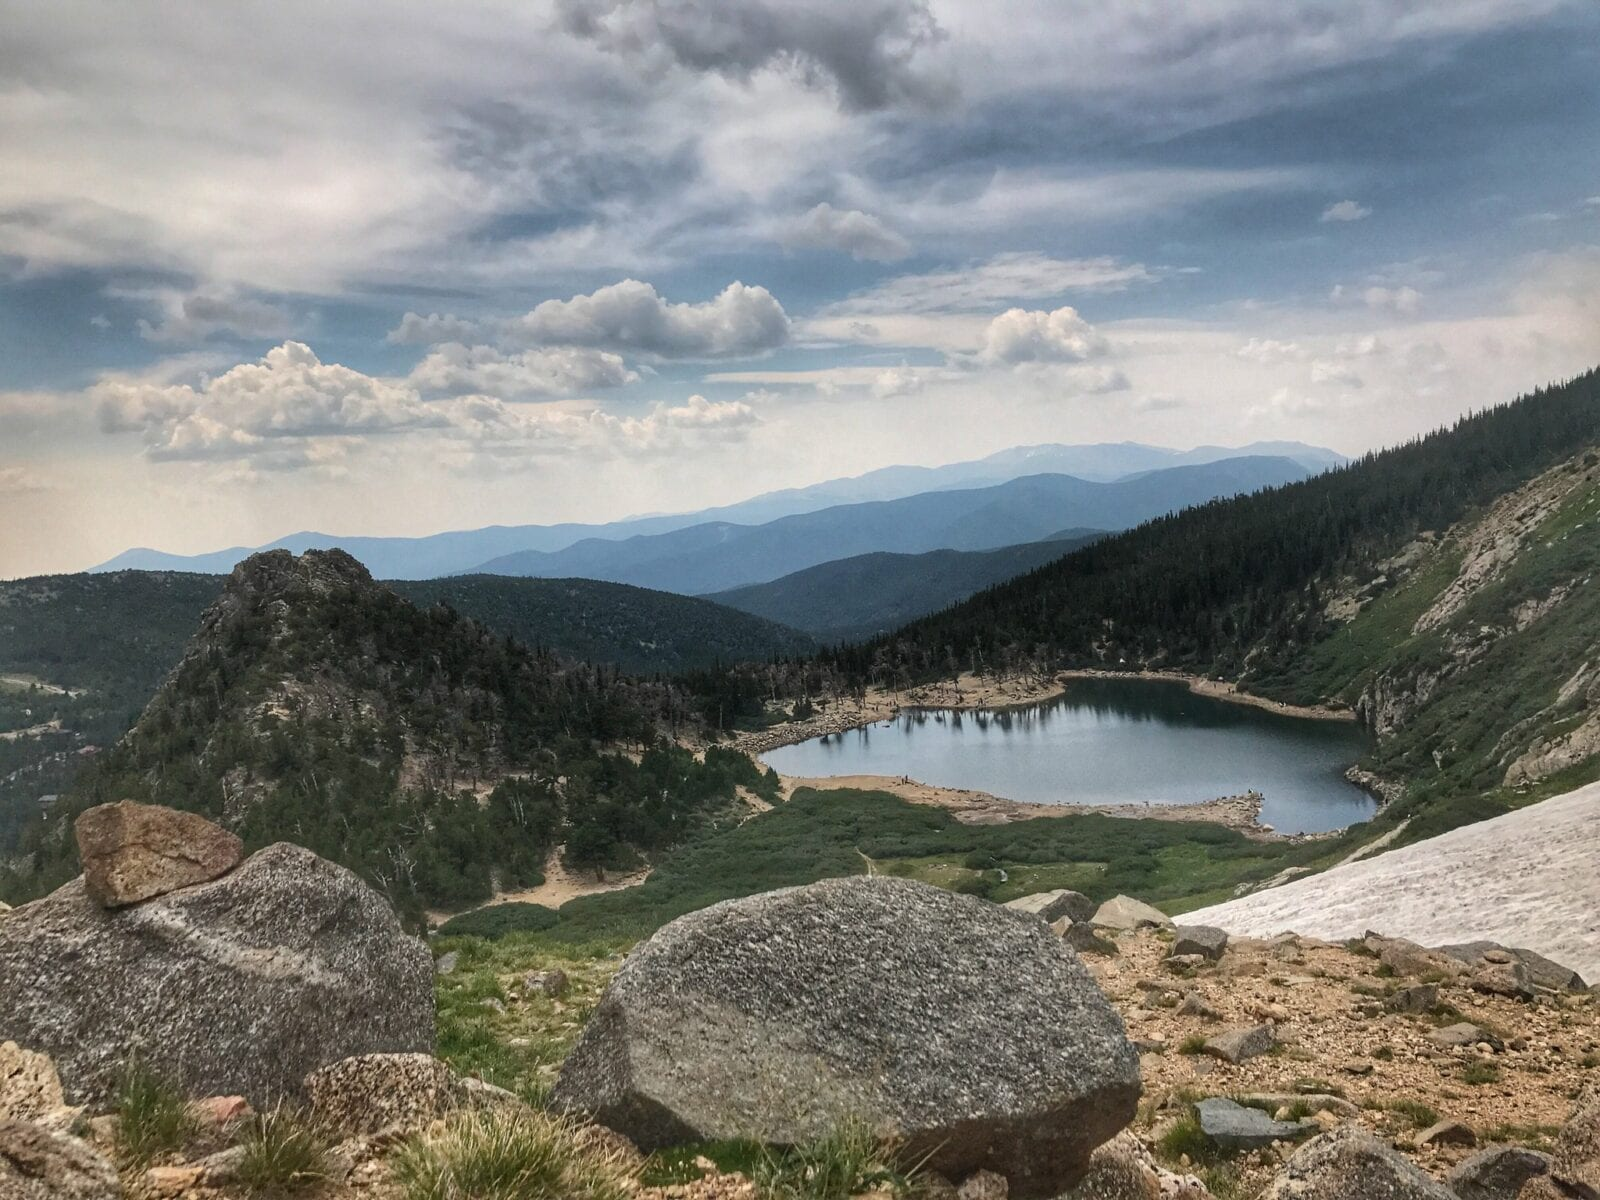 Image of St Mary's Glacier and Lake in Idaho Springs, Colorado